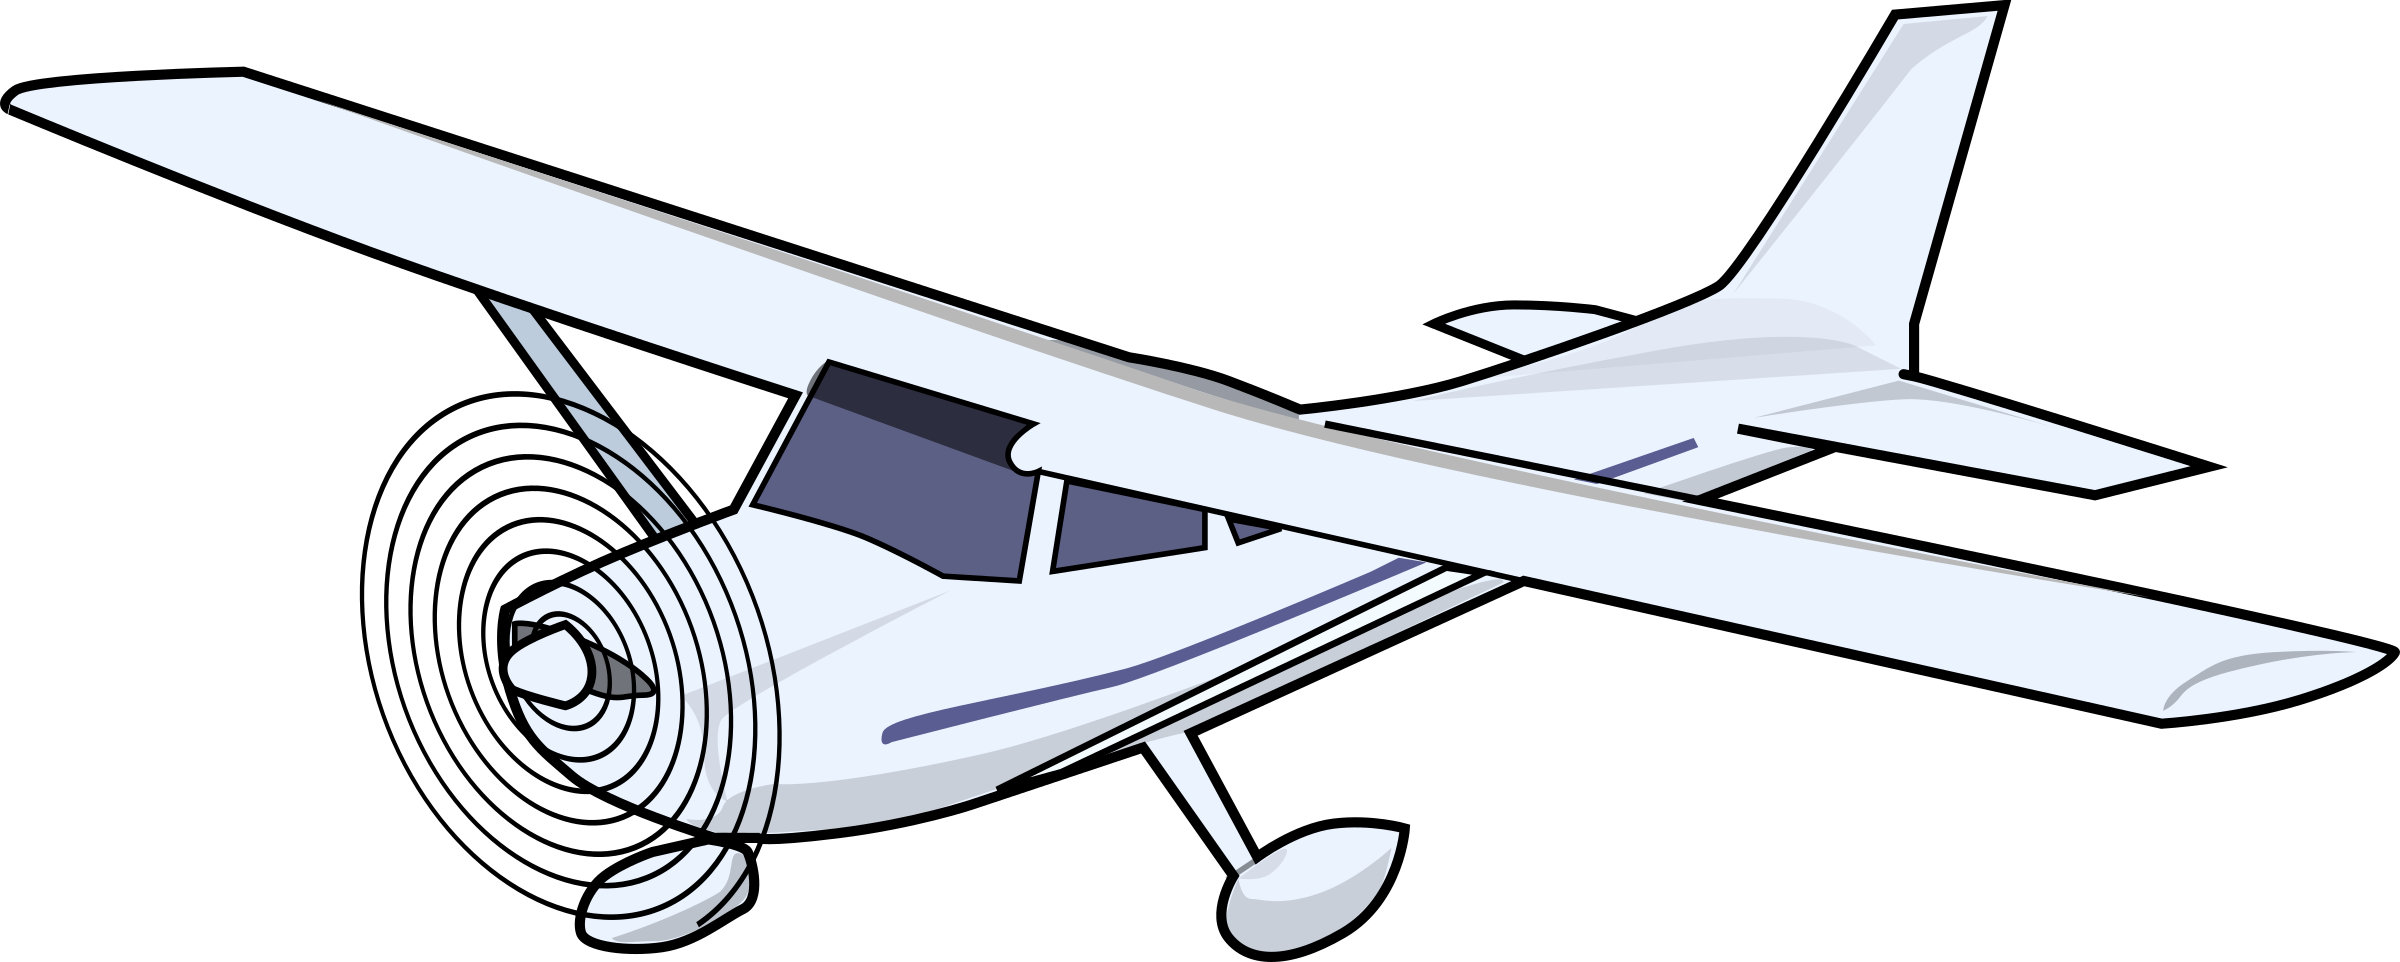 Airplane Cessna 172 Cessna 150 Clip art.